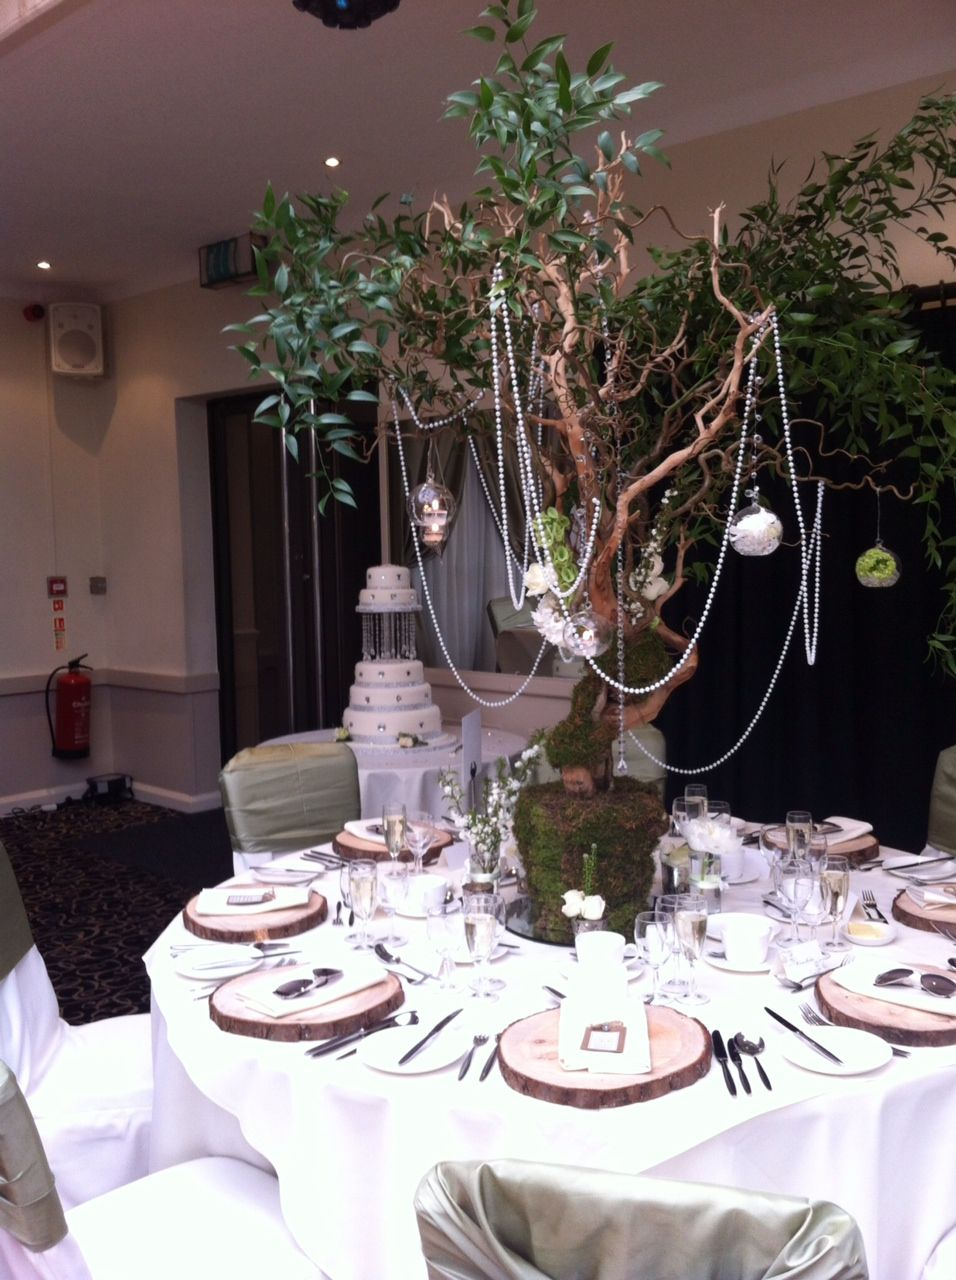 Small tree centre pieces looks fantastic with pearls and flowers